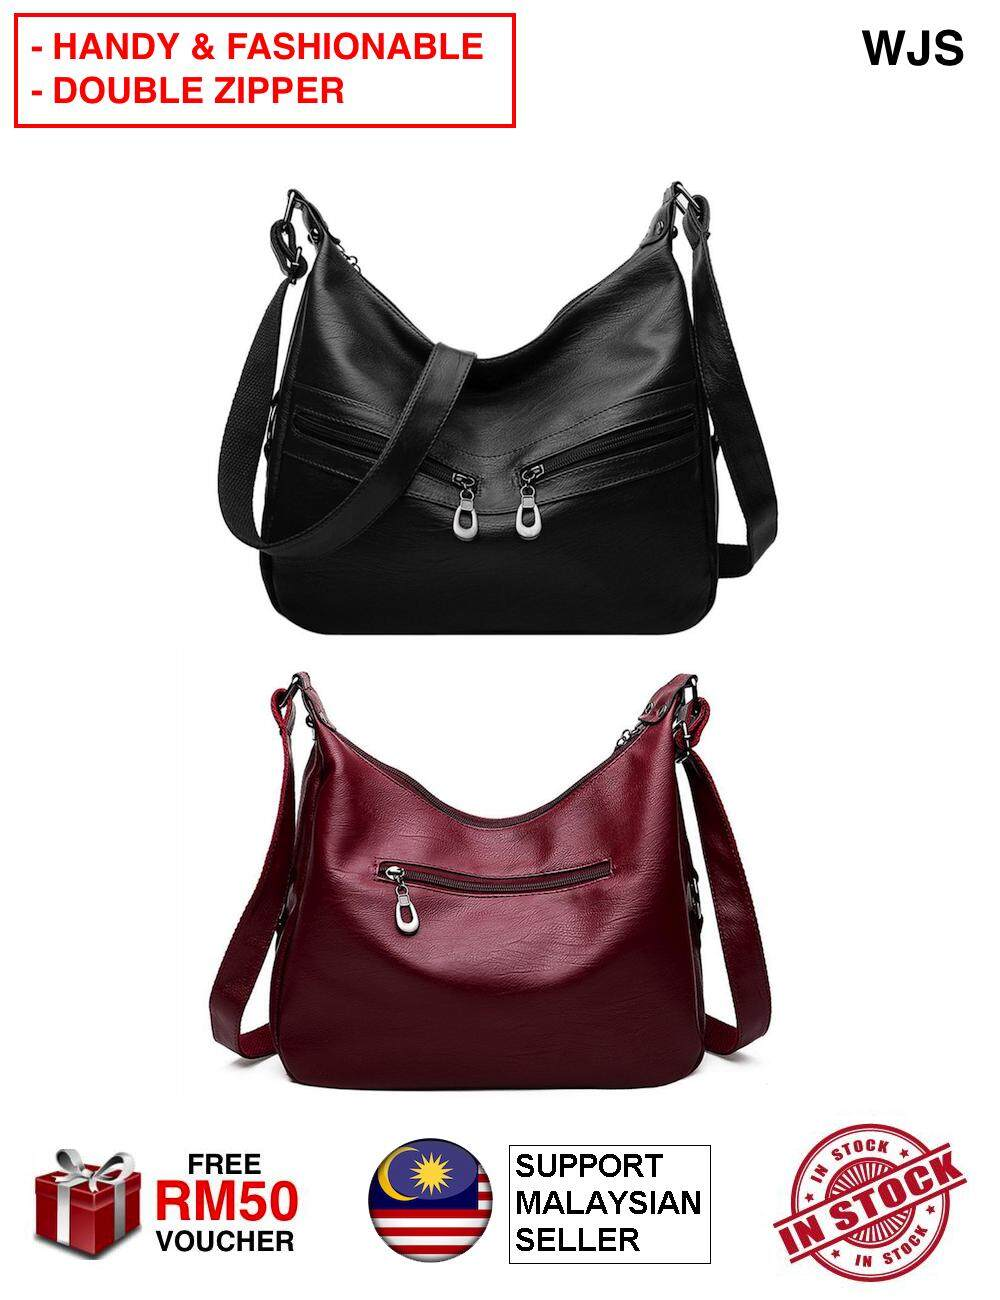 (HANDY DUAL ZIPPER) WJS Women Lady Hobos Messenger Dual Zipper Handbag PU Leather Tote Bag Shoulder Bag Fashion with Pocket Messenger Tote Shoulder Bag Satchel Crossbody Handbag Hand Bag Beg Tangan Handbeg BLACK RED [FREE RM 50 VOUCHER]